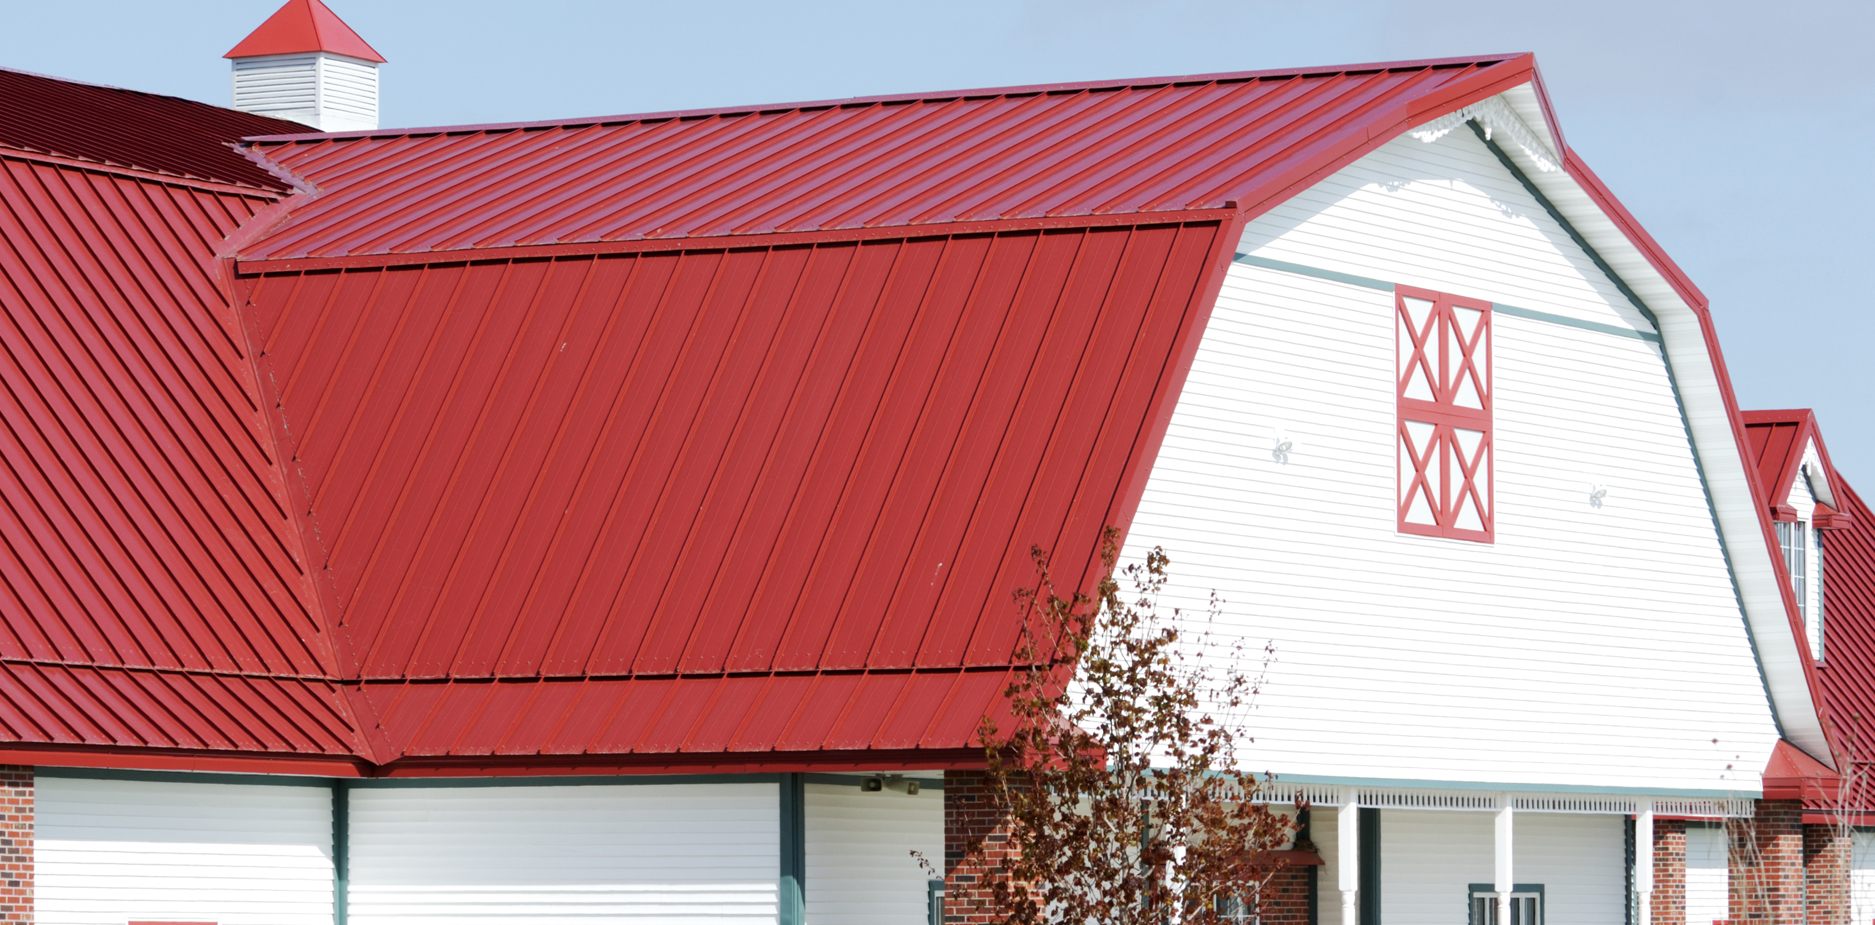 Large metal roofing projects